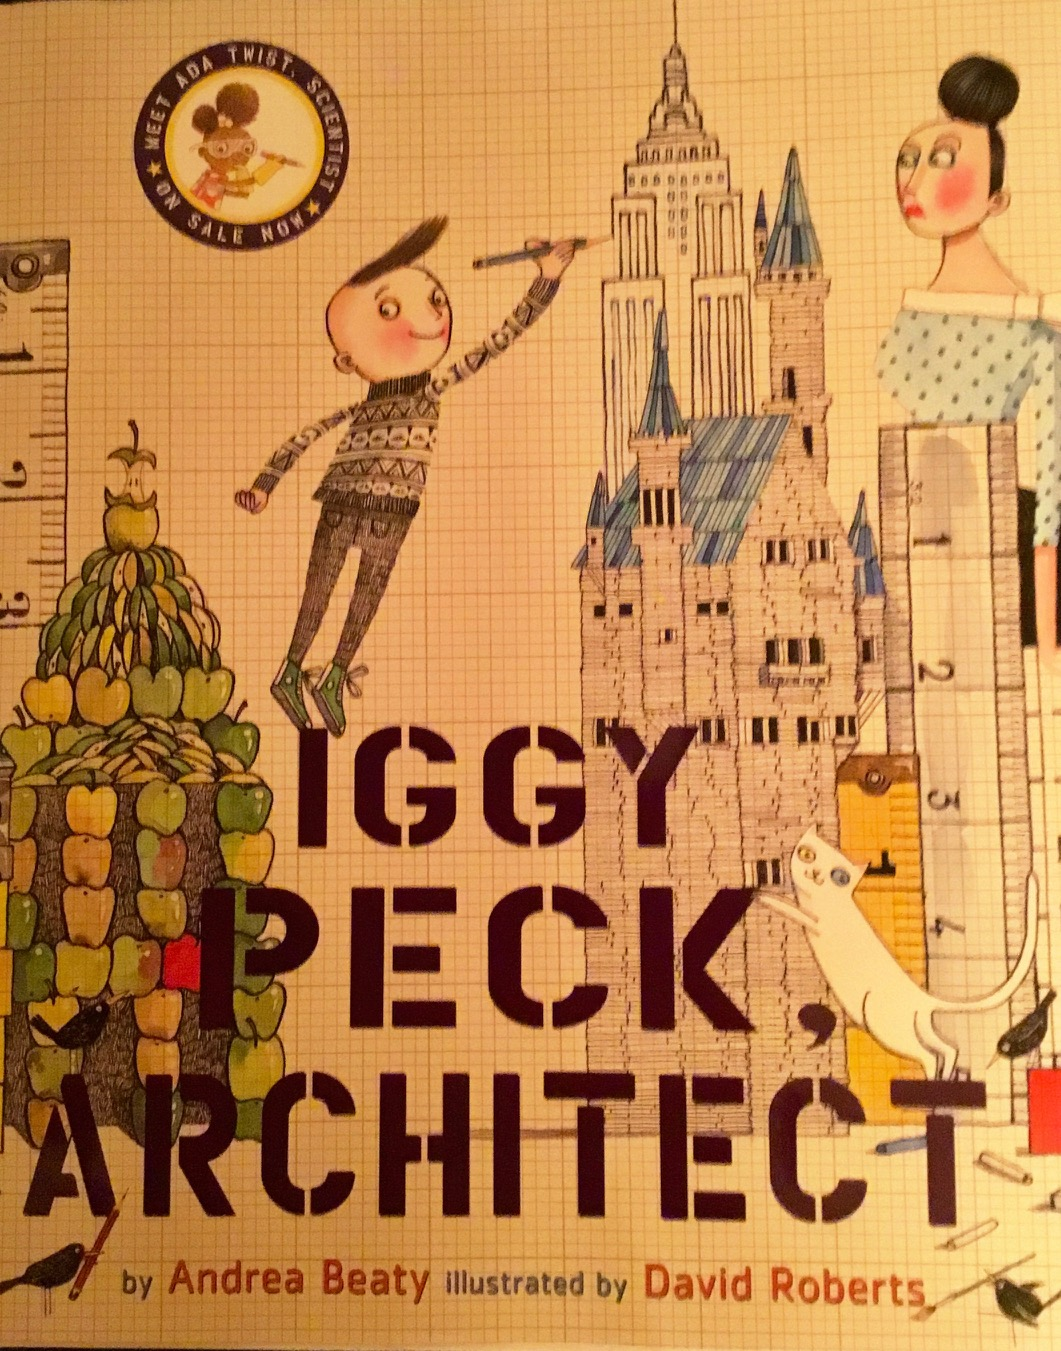 Iggy Peck Architect by Andrea Beaty is a gift Danielle and I recently received at our baby shower.